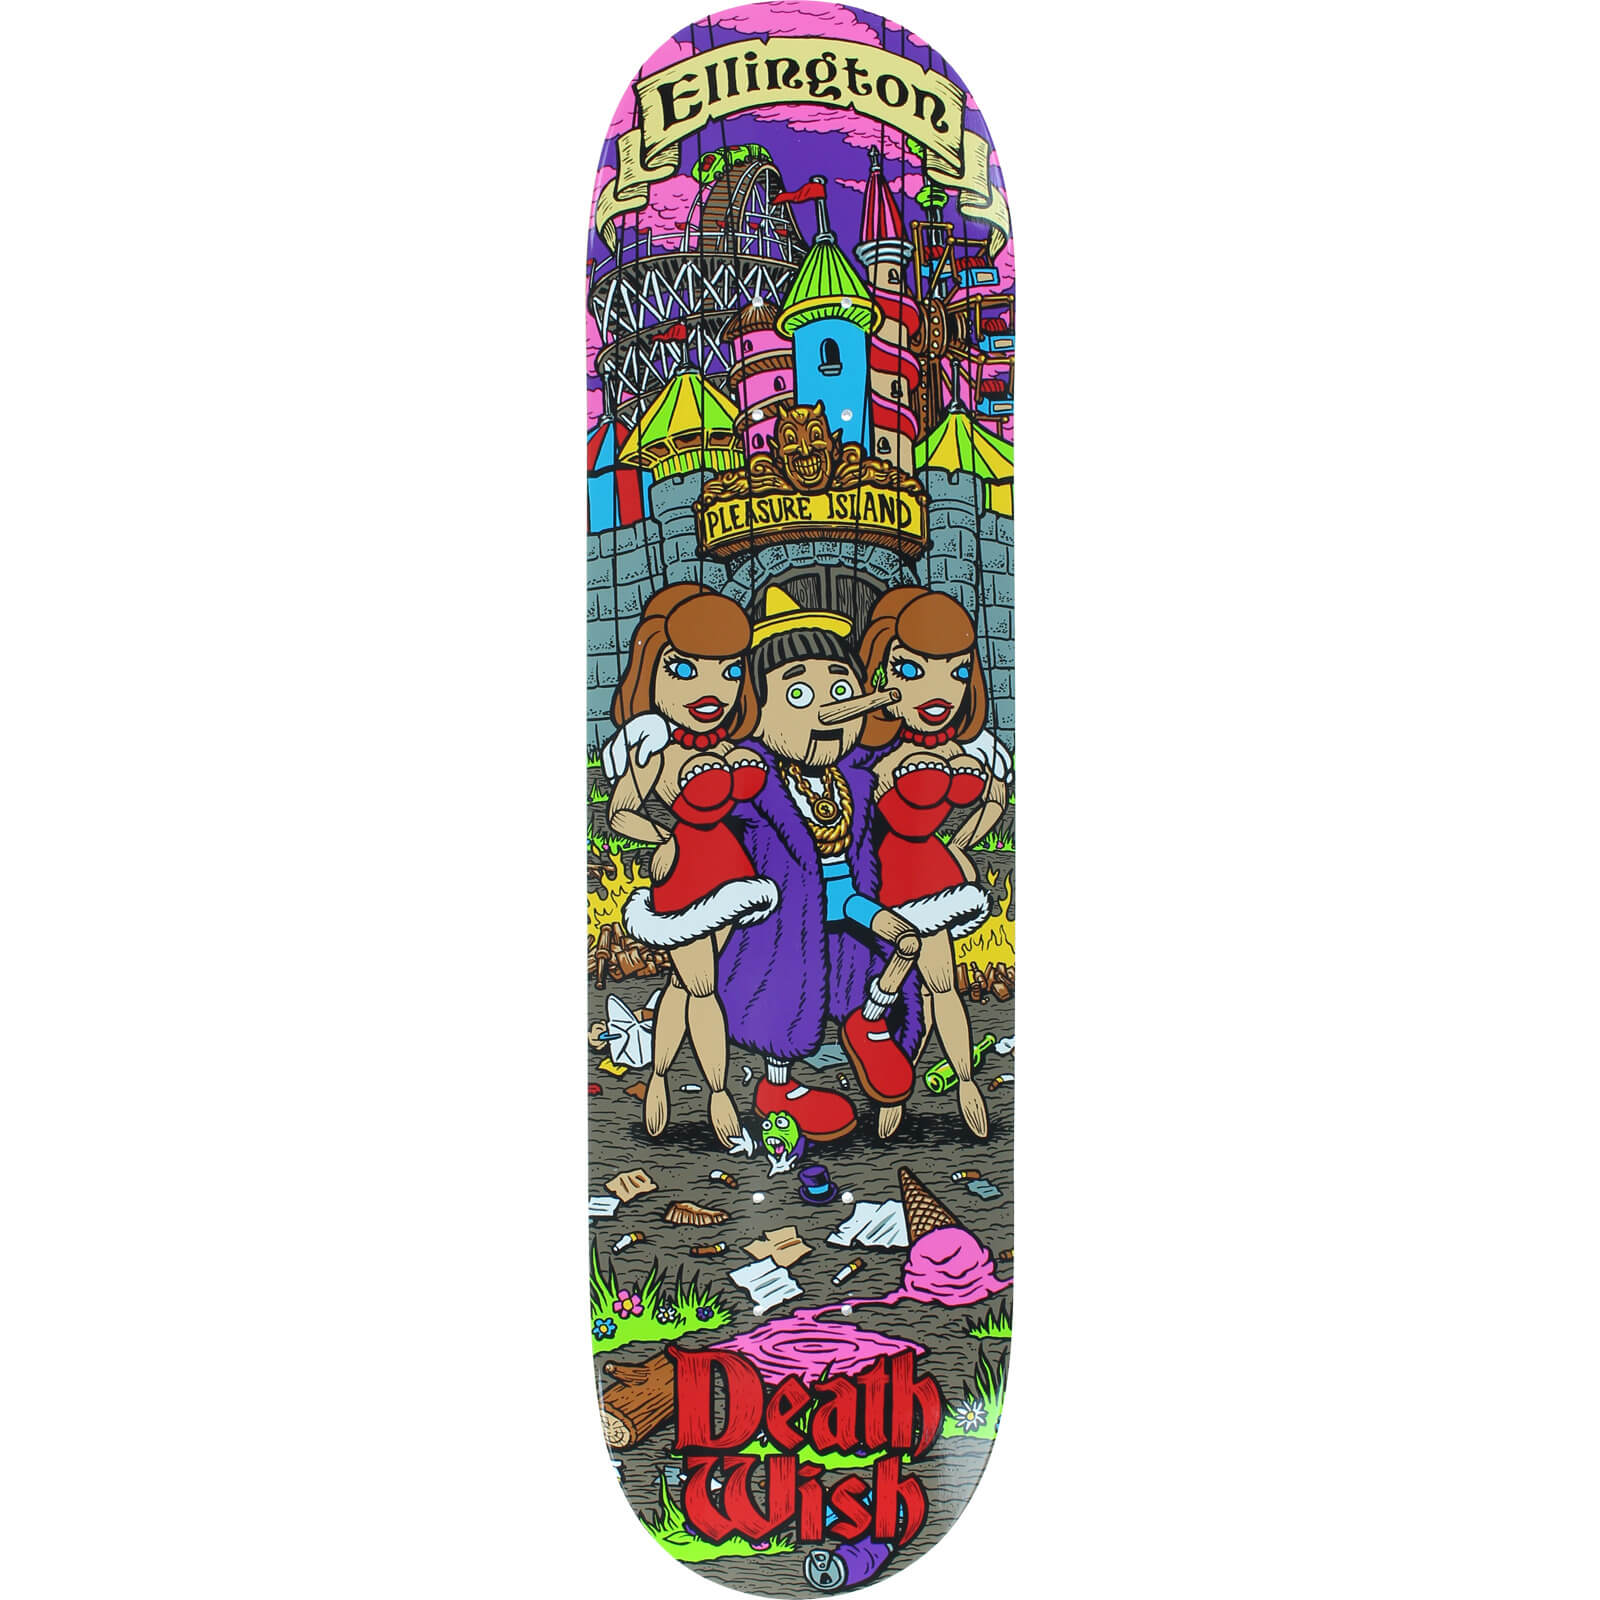 Deathwish Skateboards Erik Ellington Story Time Skateboard